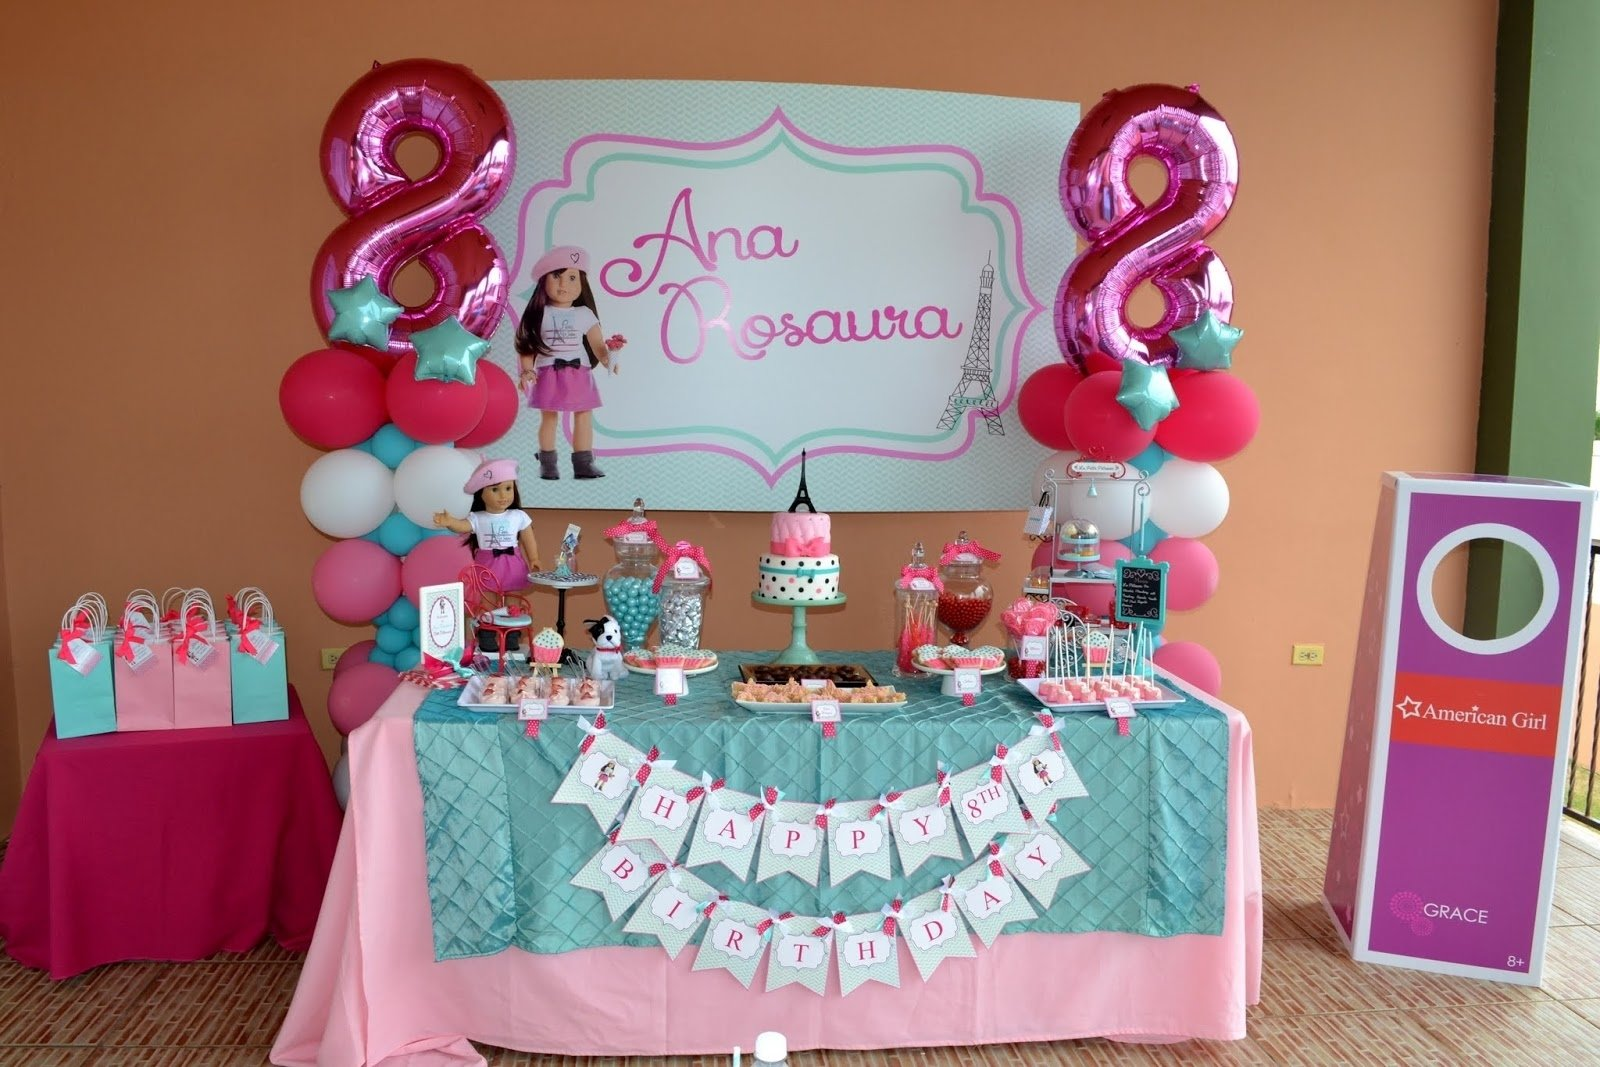 10 Great American Girl Doll Birthday Party Ideas partylicious events pr american girl cupcake party 1 2020